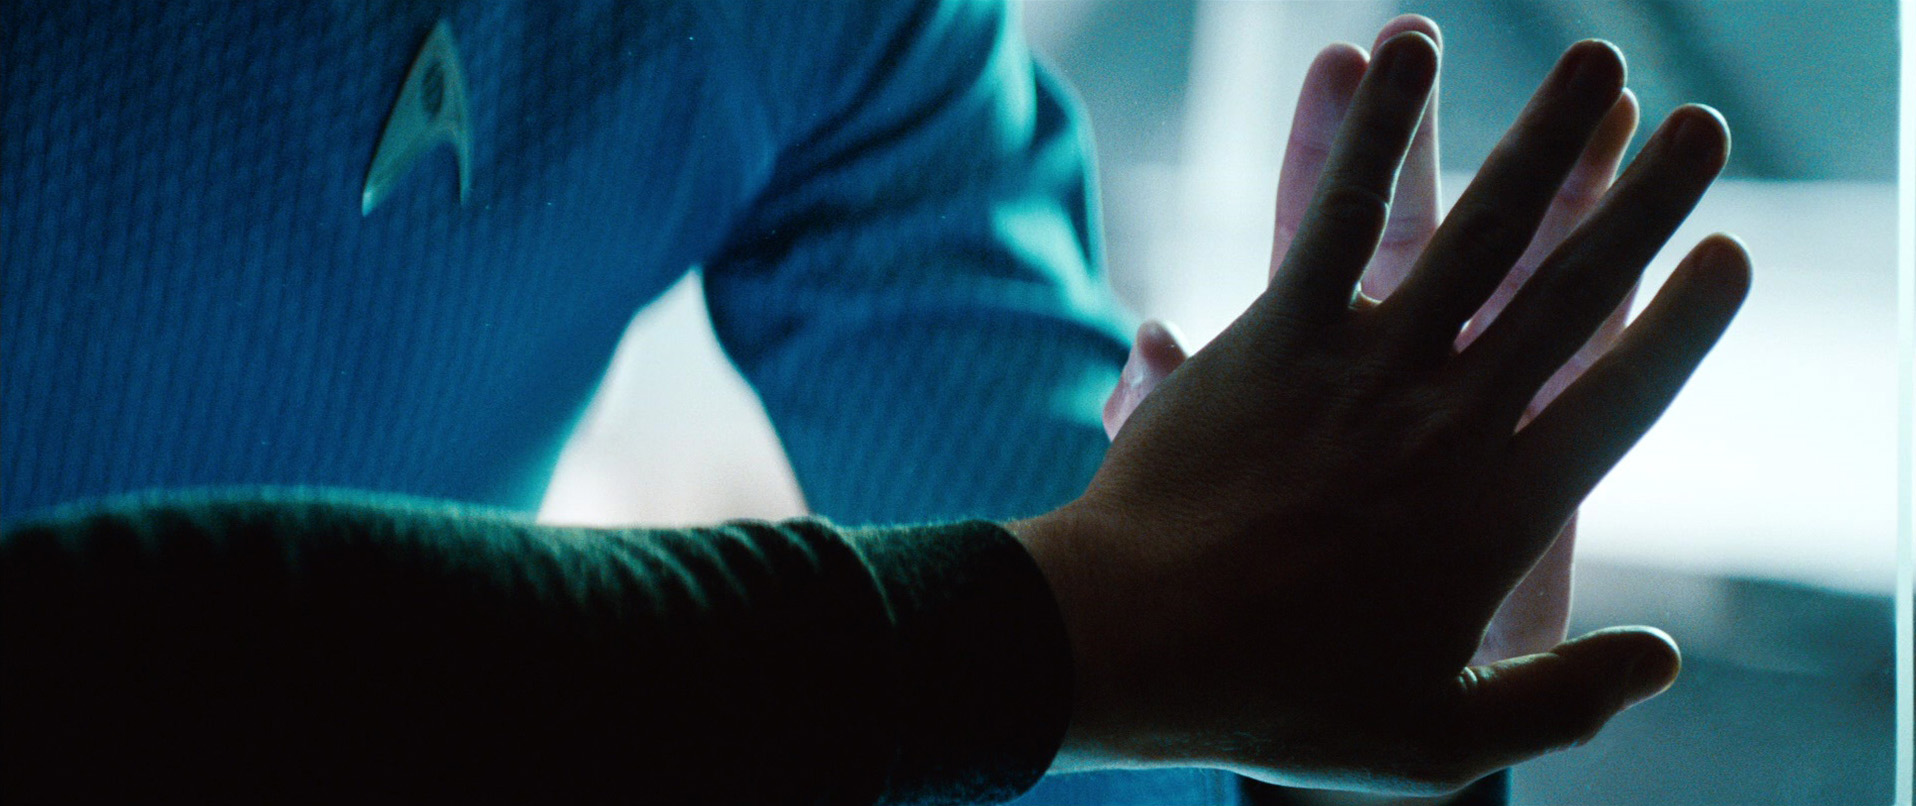 star-trek-into-darkness-kirk's-death-hands